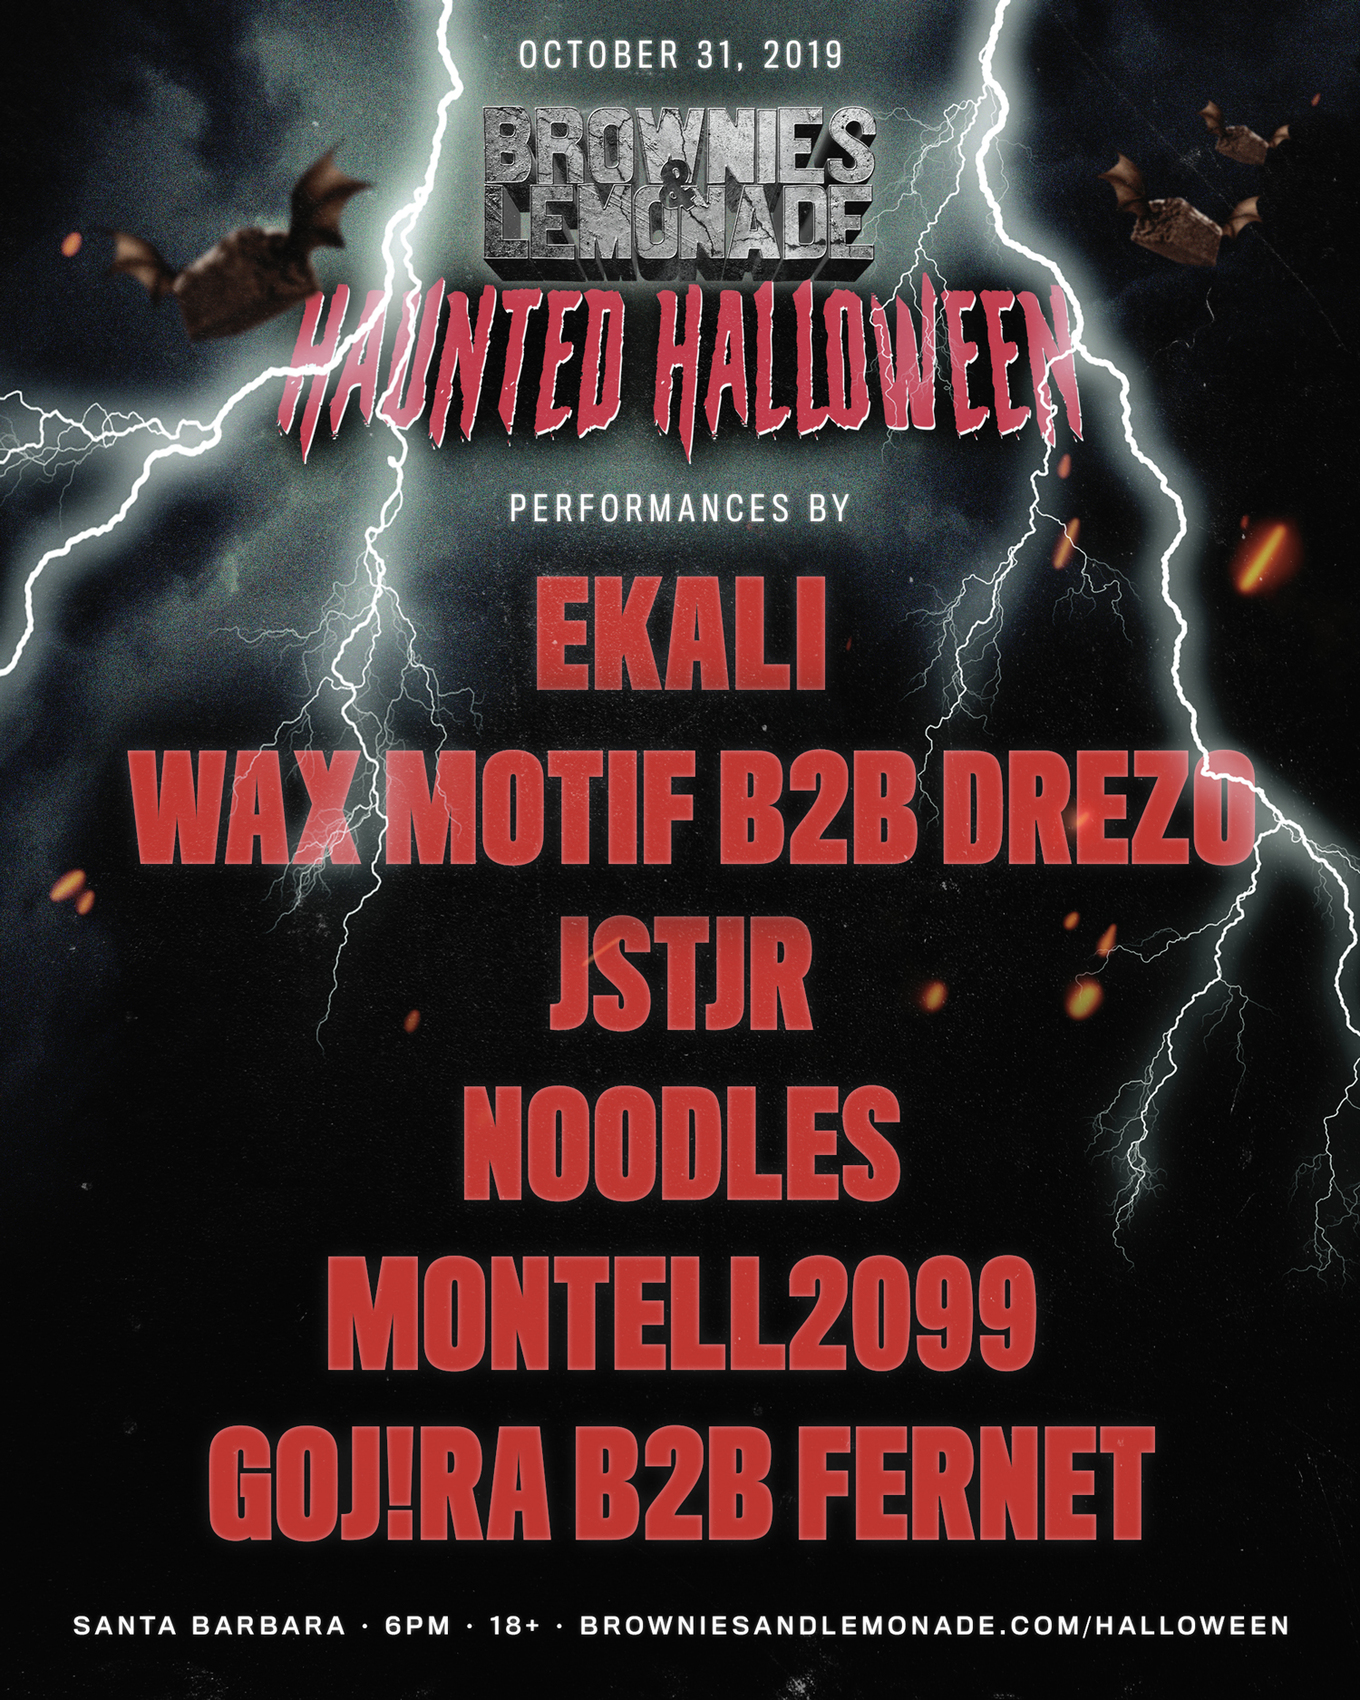 Rave In Arlington Halloween 2020 Brownies & Lemonade Haunted Halloween 10.31.19   Tickets